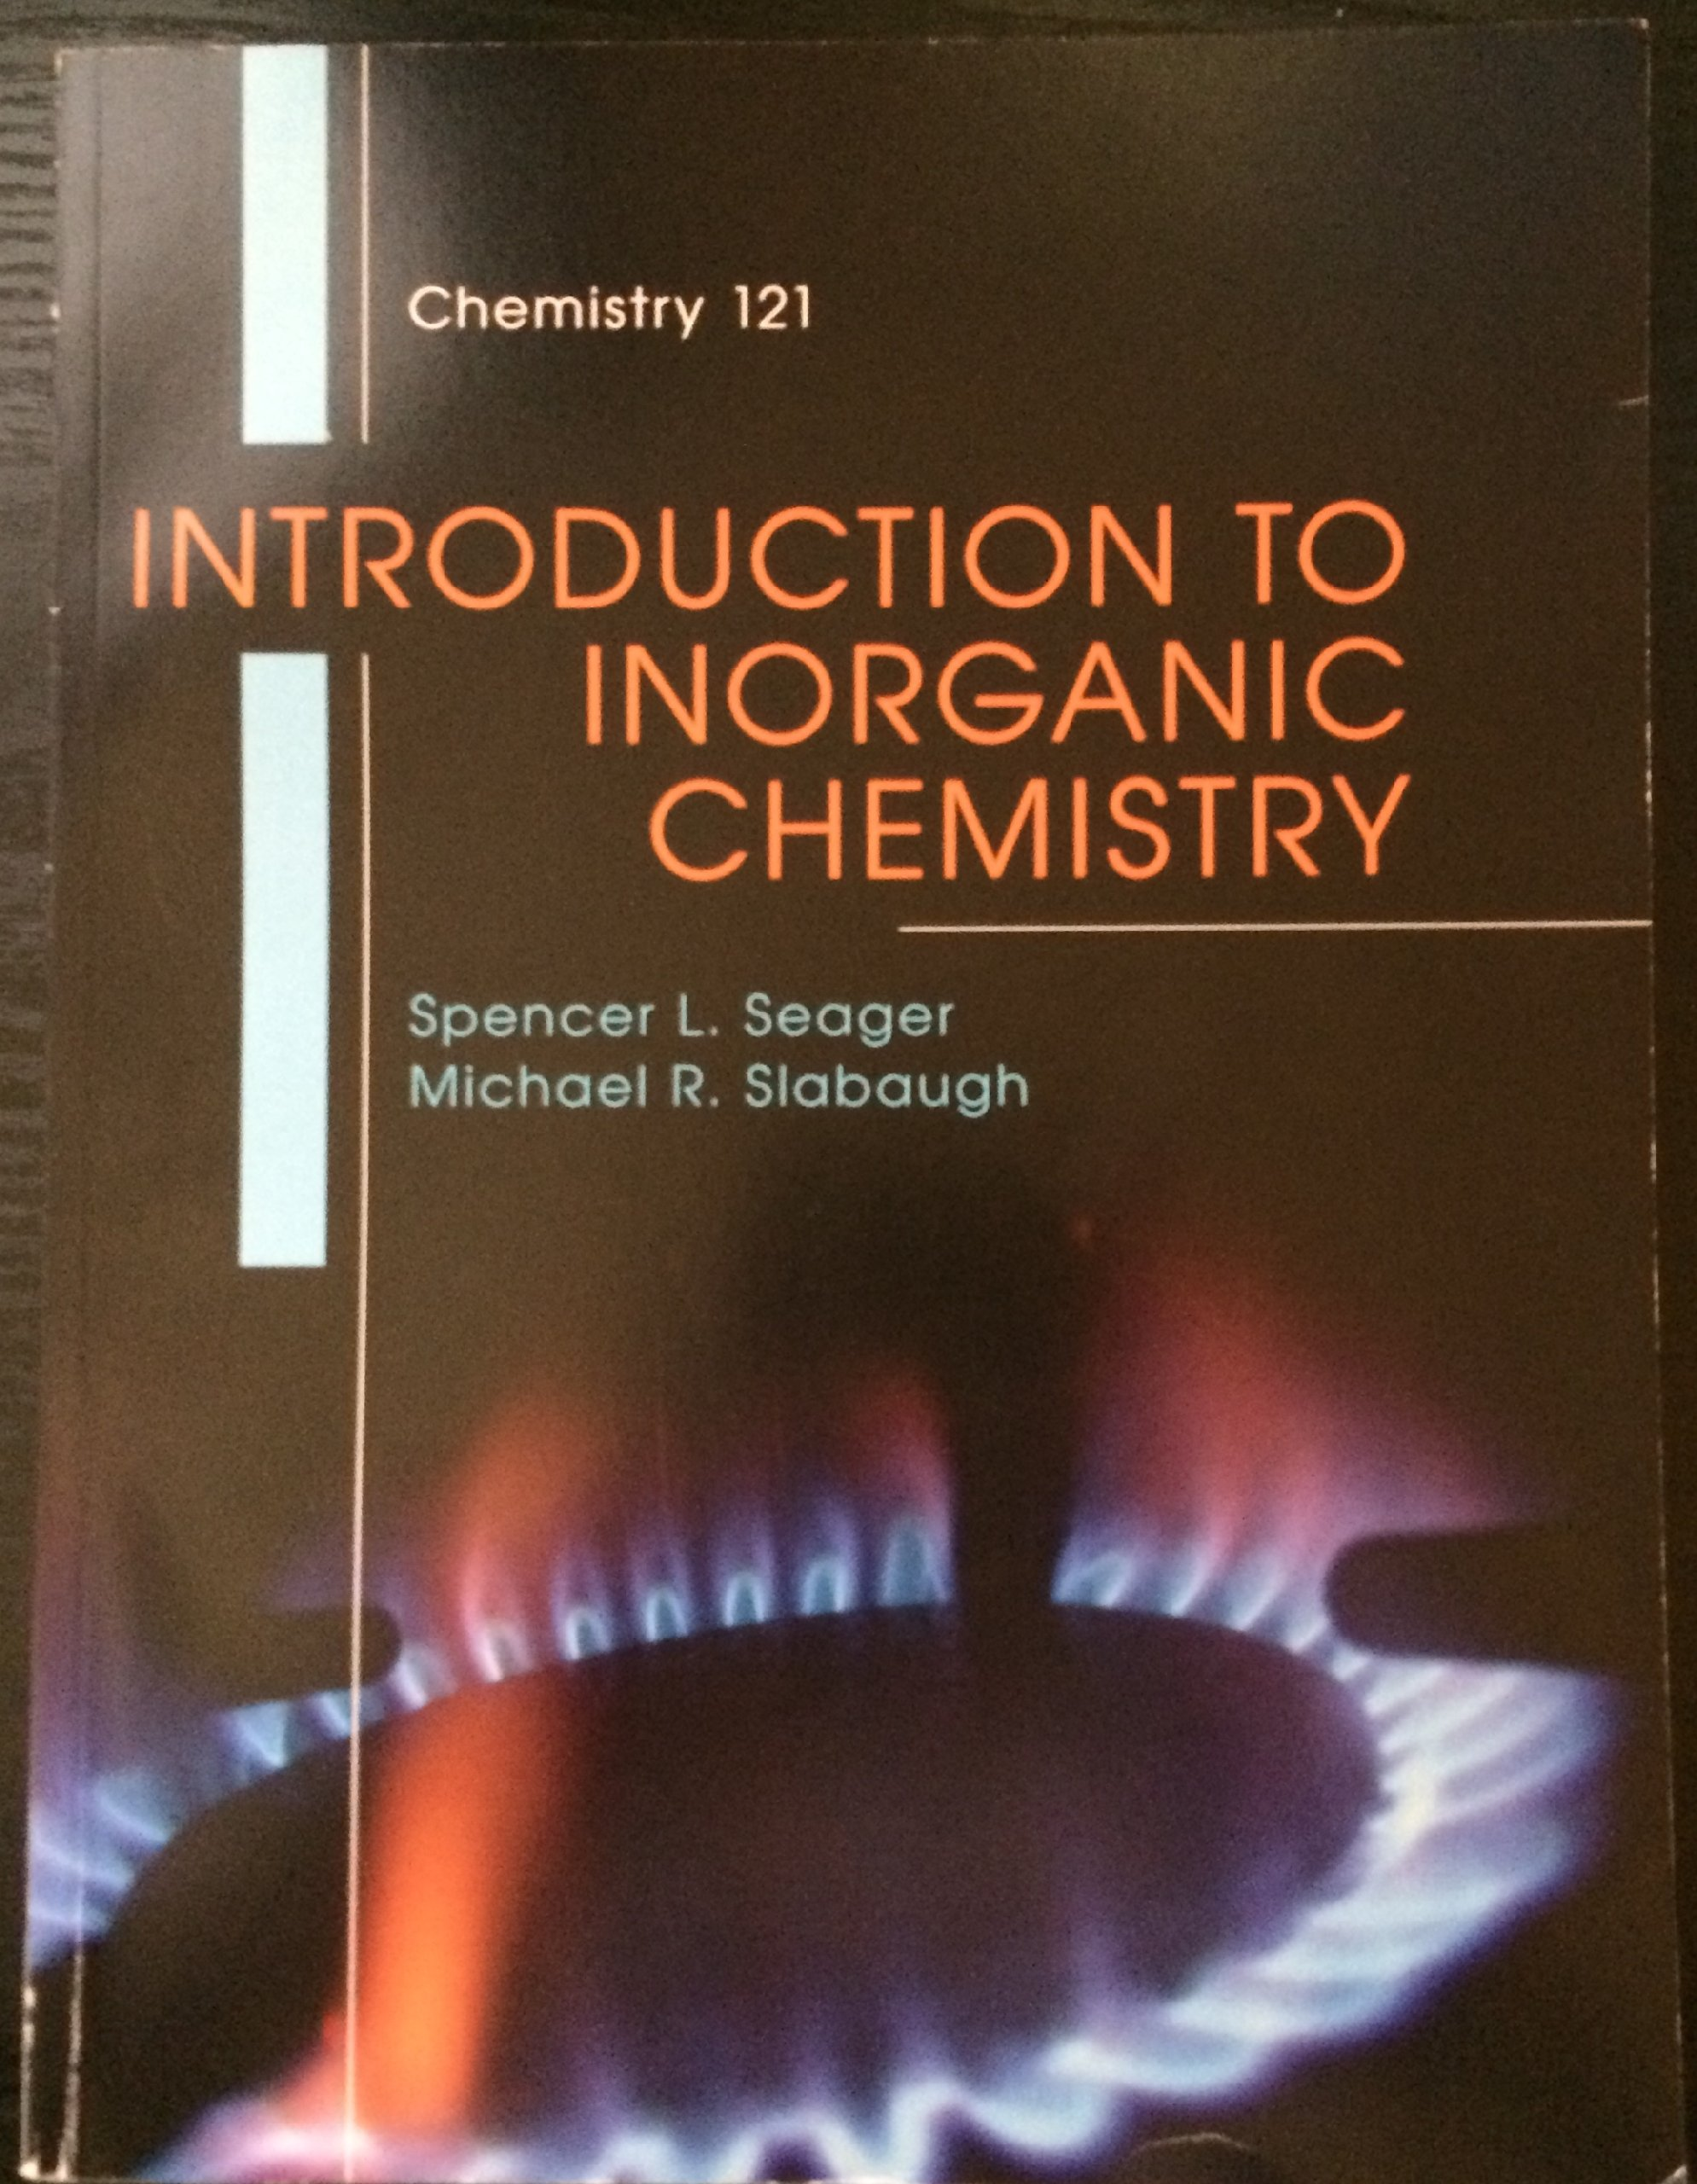 Introduction to Inorganic Chemistry + Lab Manual -SEAGER/SLABAUGH: Spencer  L. Seager, Michael R. Slabaugh: 9781285915210: Amazon.com: Books